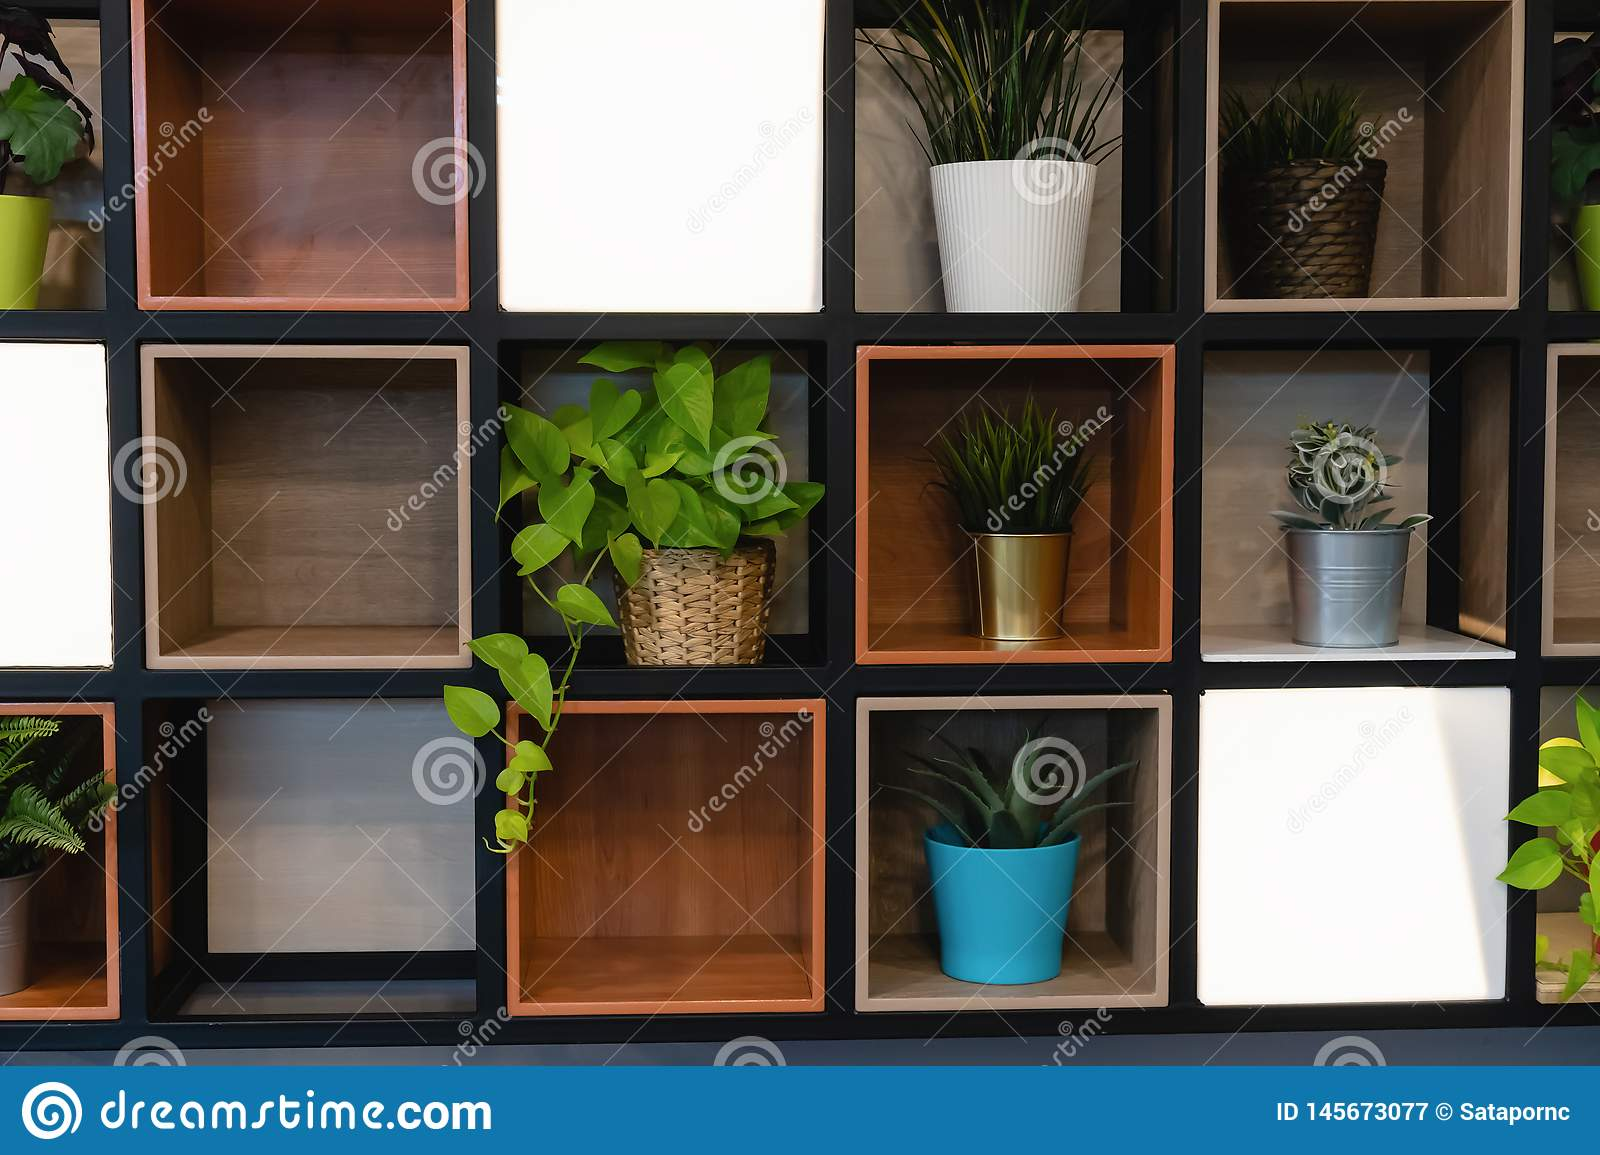 Plant pots placed on the wooden shelf attached to the wall